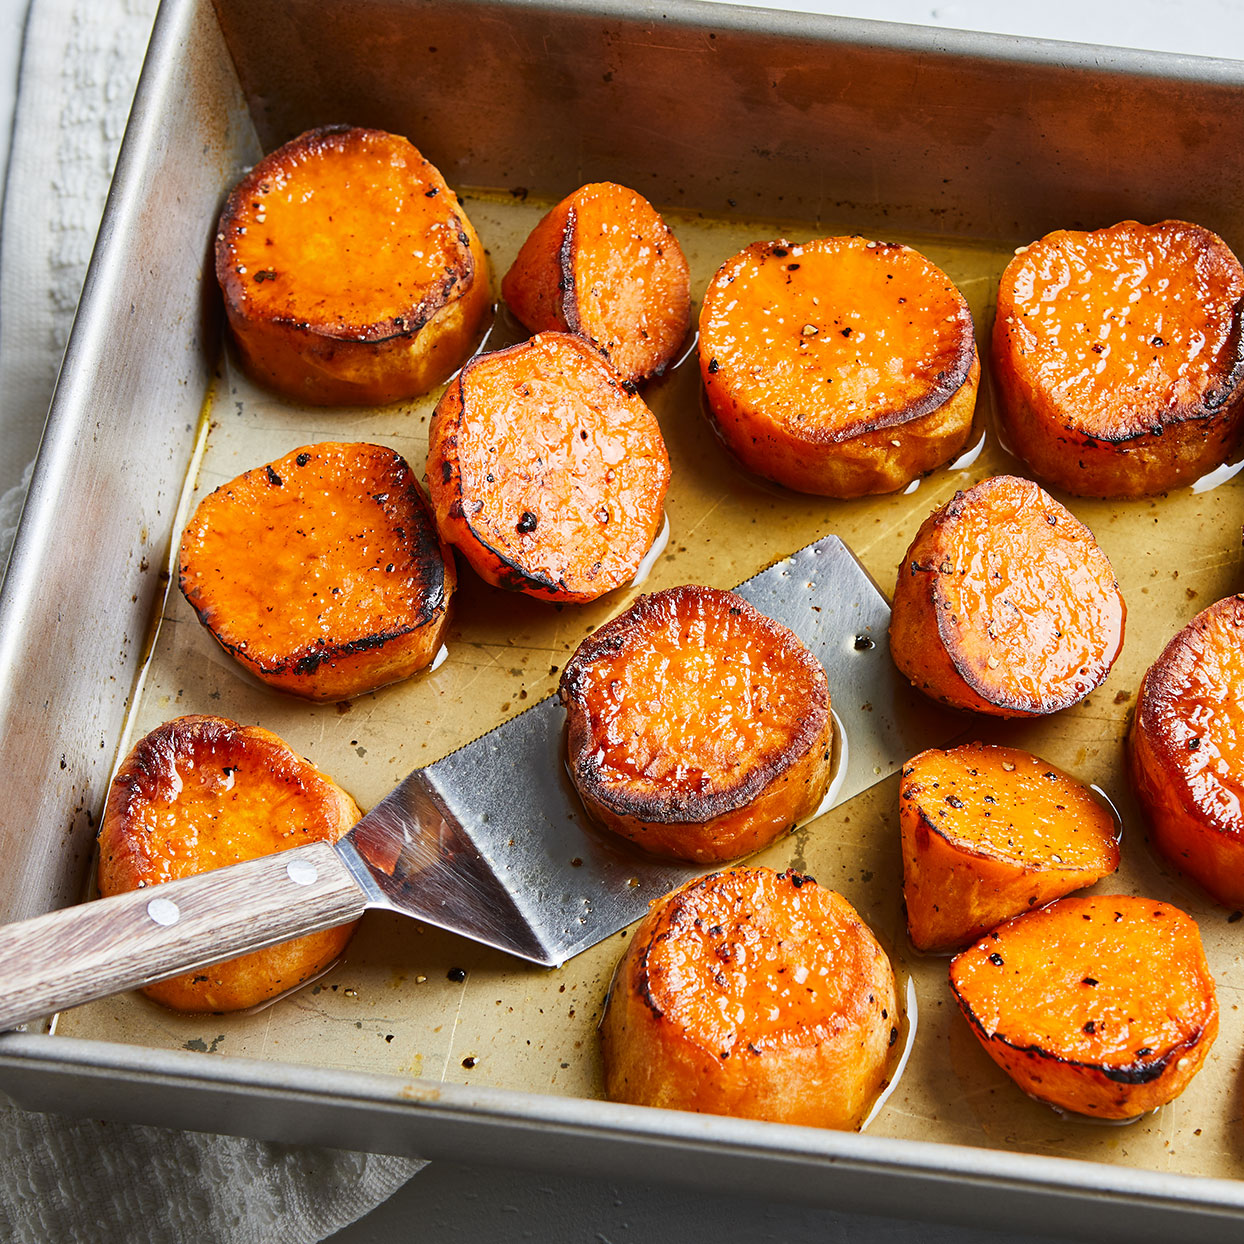 Melting Sweet Potatoes with Maple Butter Trusted Brands